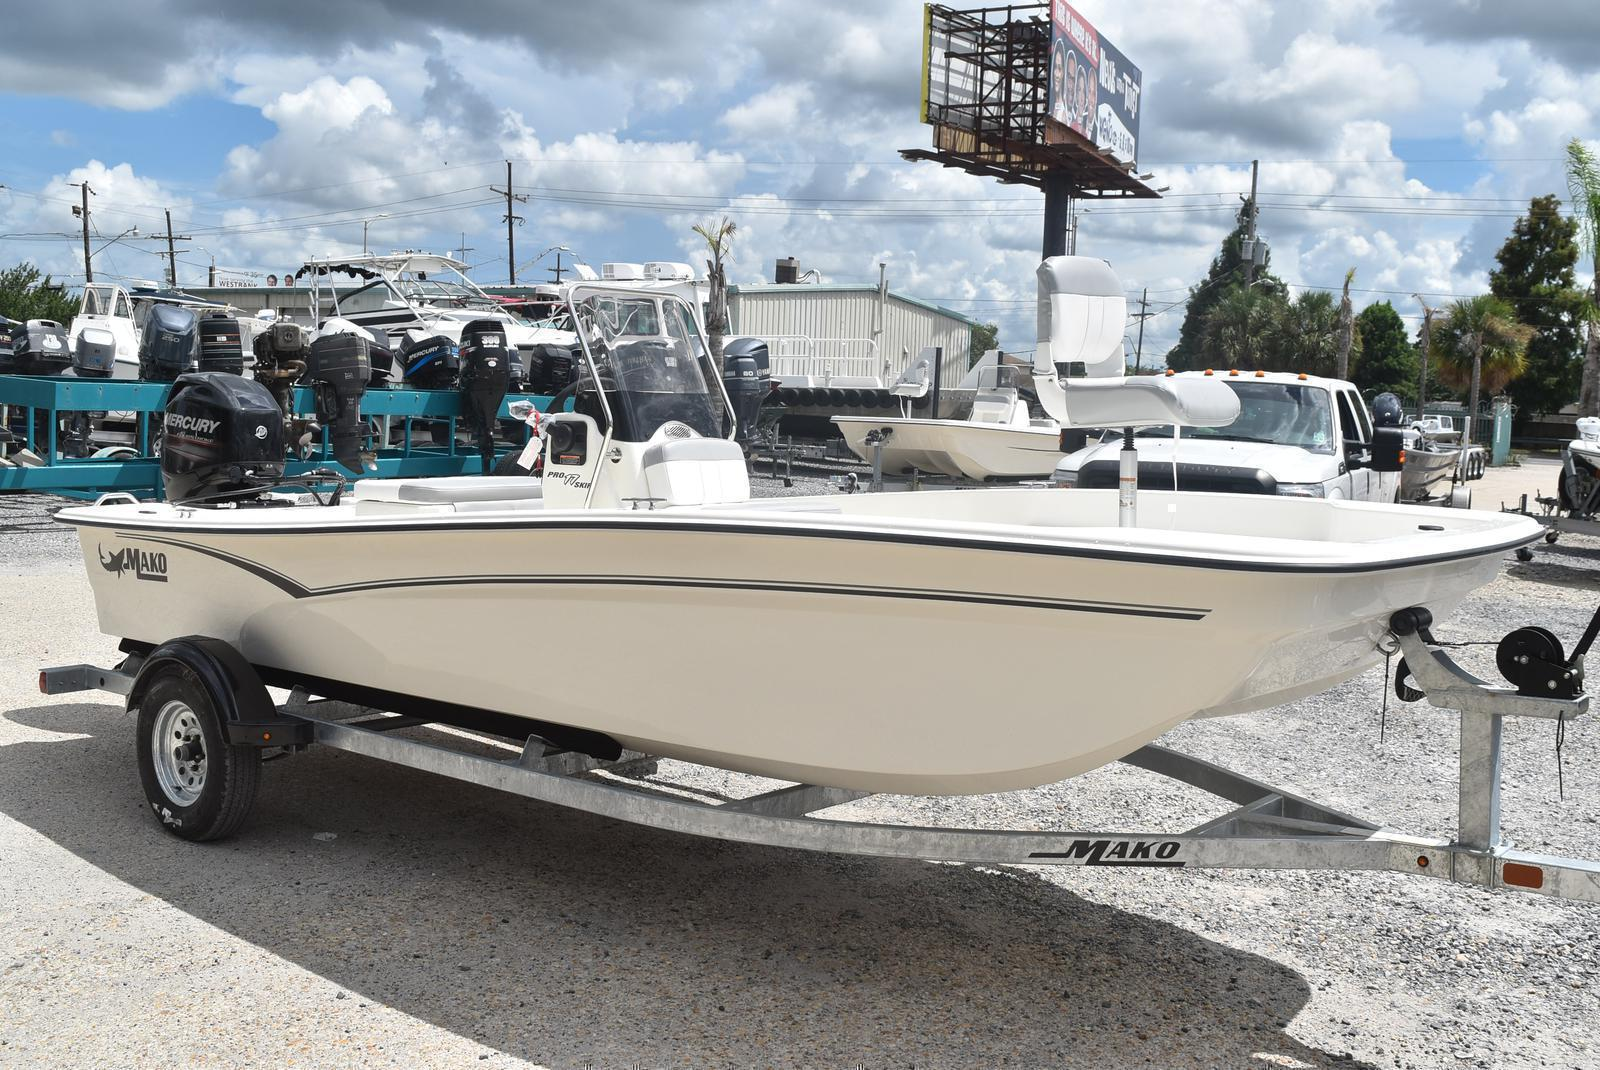 2020 Mako boat for sale, model of the boat is Pro Skiff 17, 75 ELPT & Image # 638 of 702